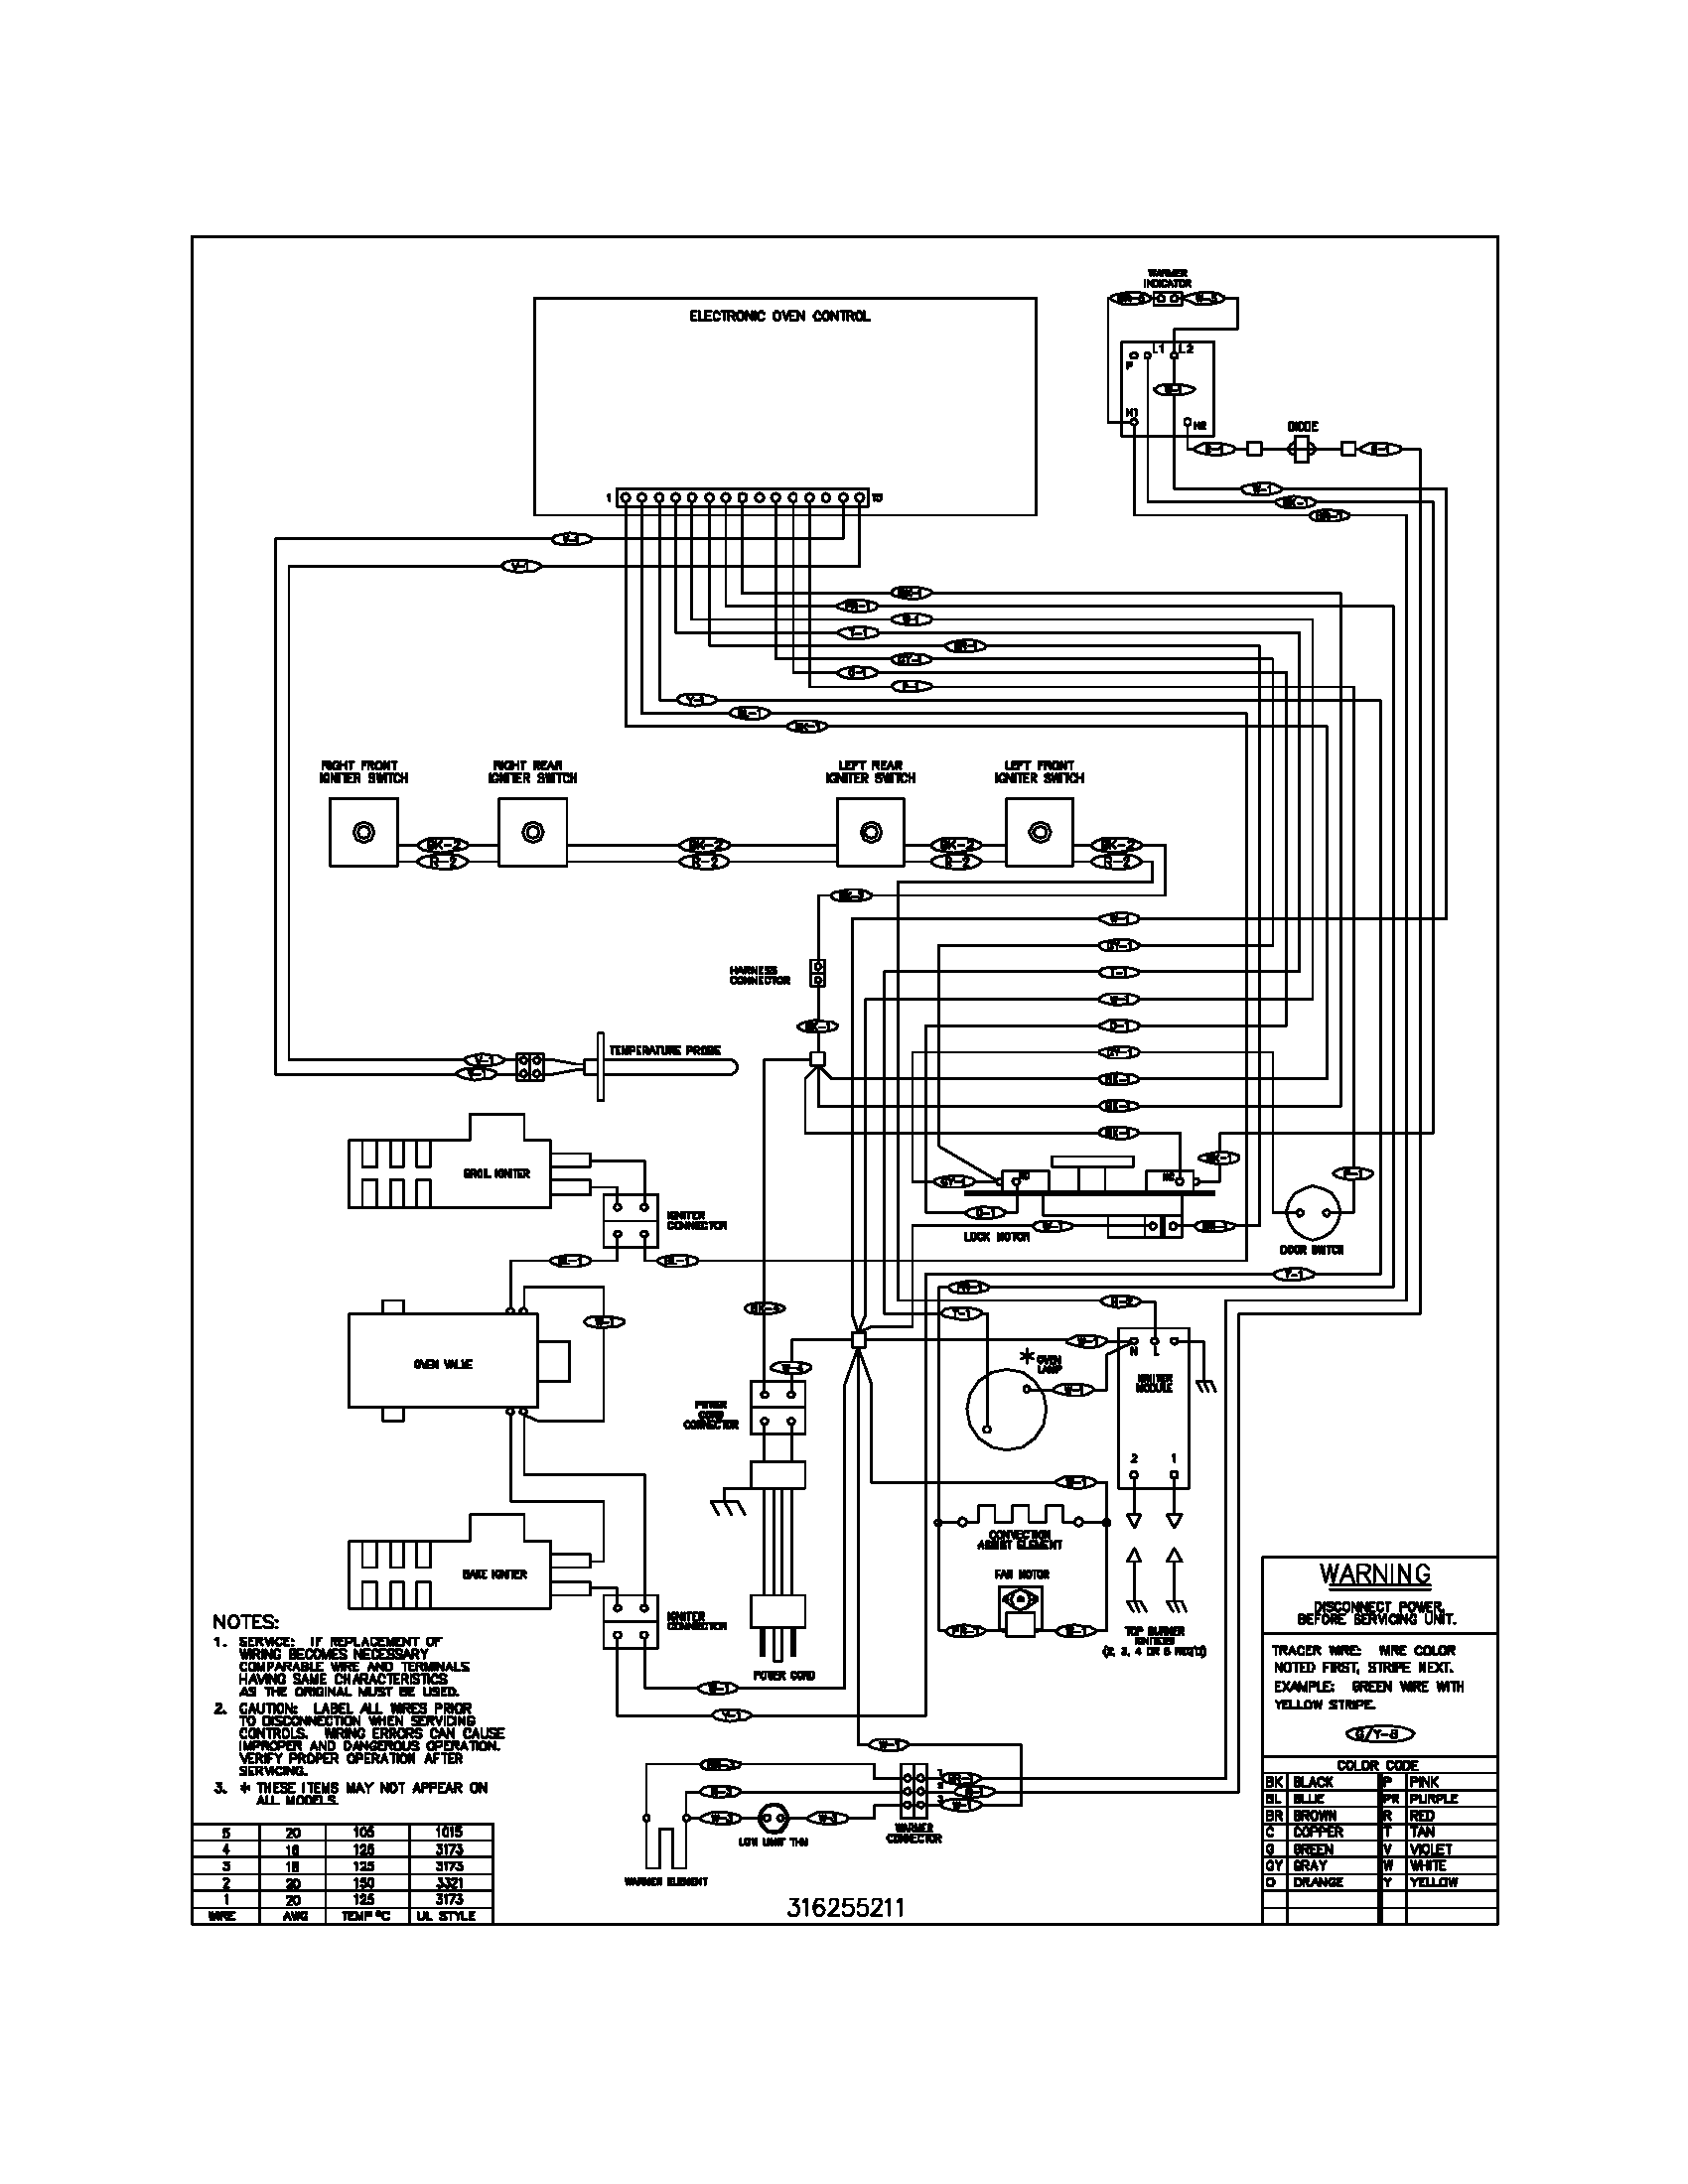 Commercial Freezer Wiring Schematic Diagram Of A Room Great Installation Diagrams Rh 43 Koch Foerderbandtrommeln De Chest